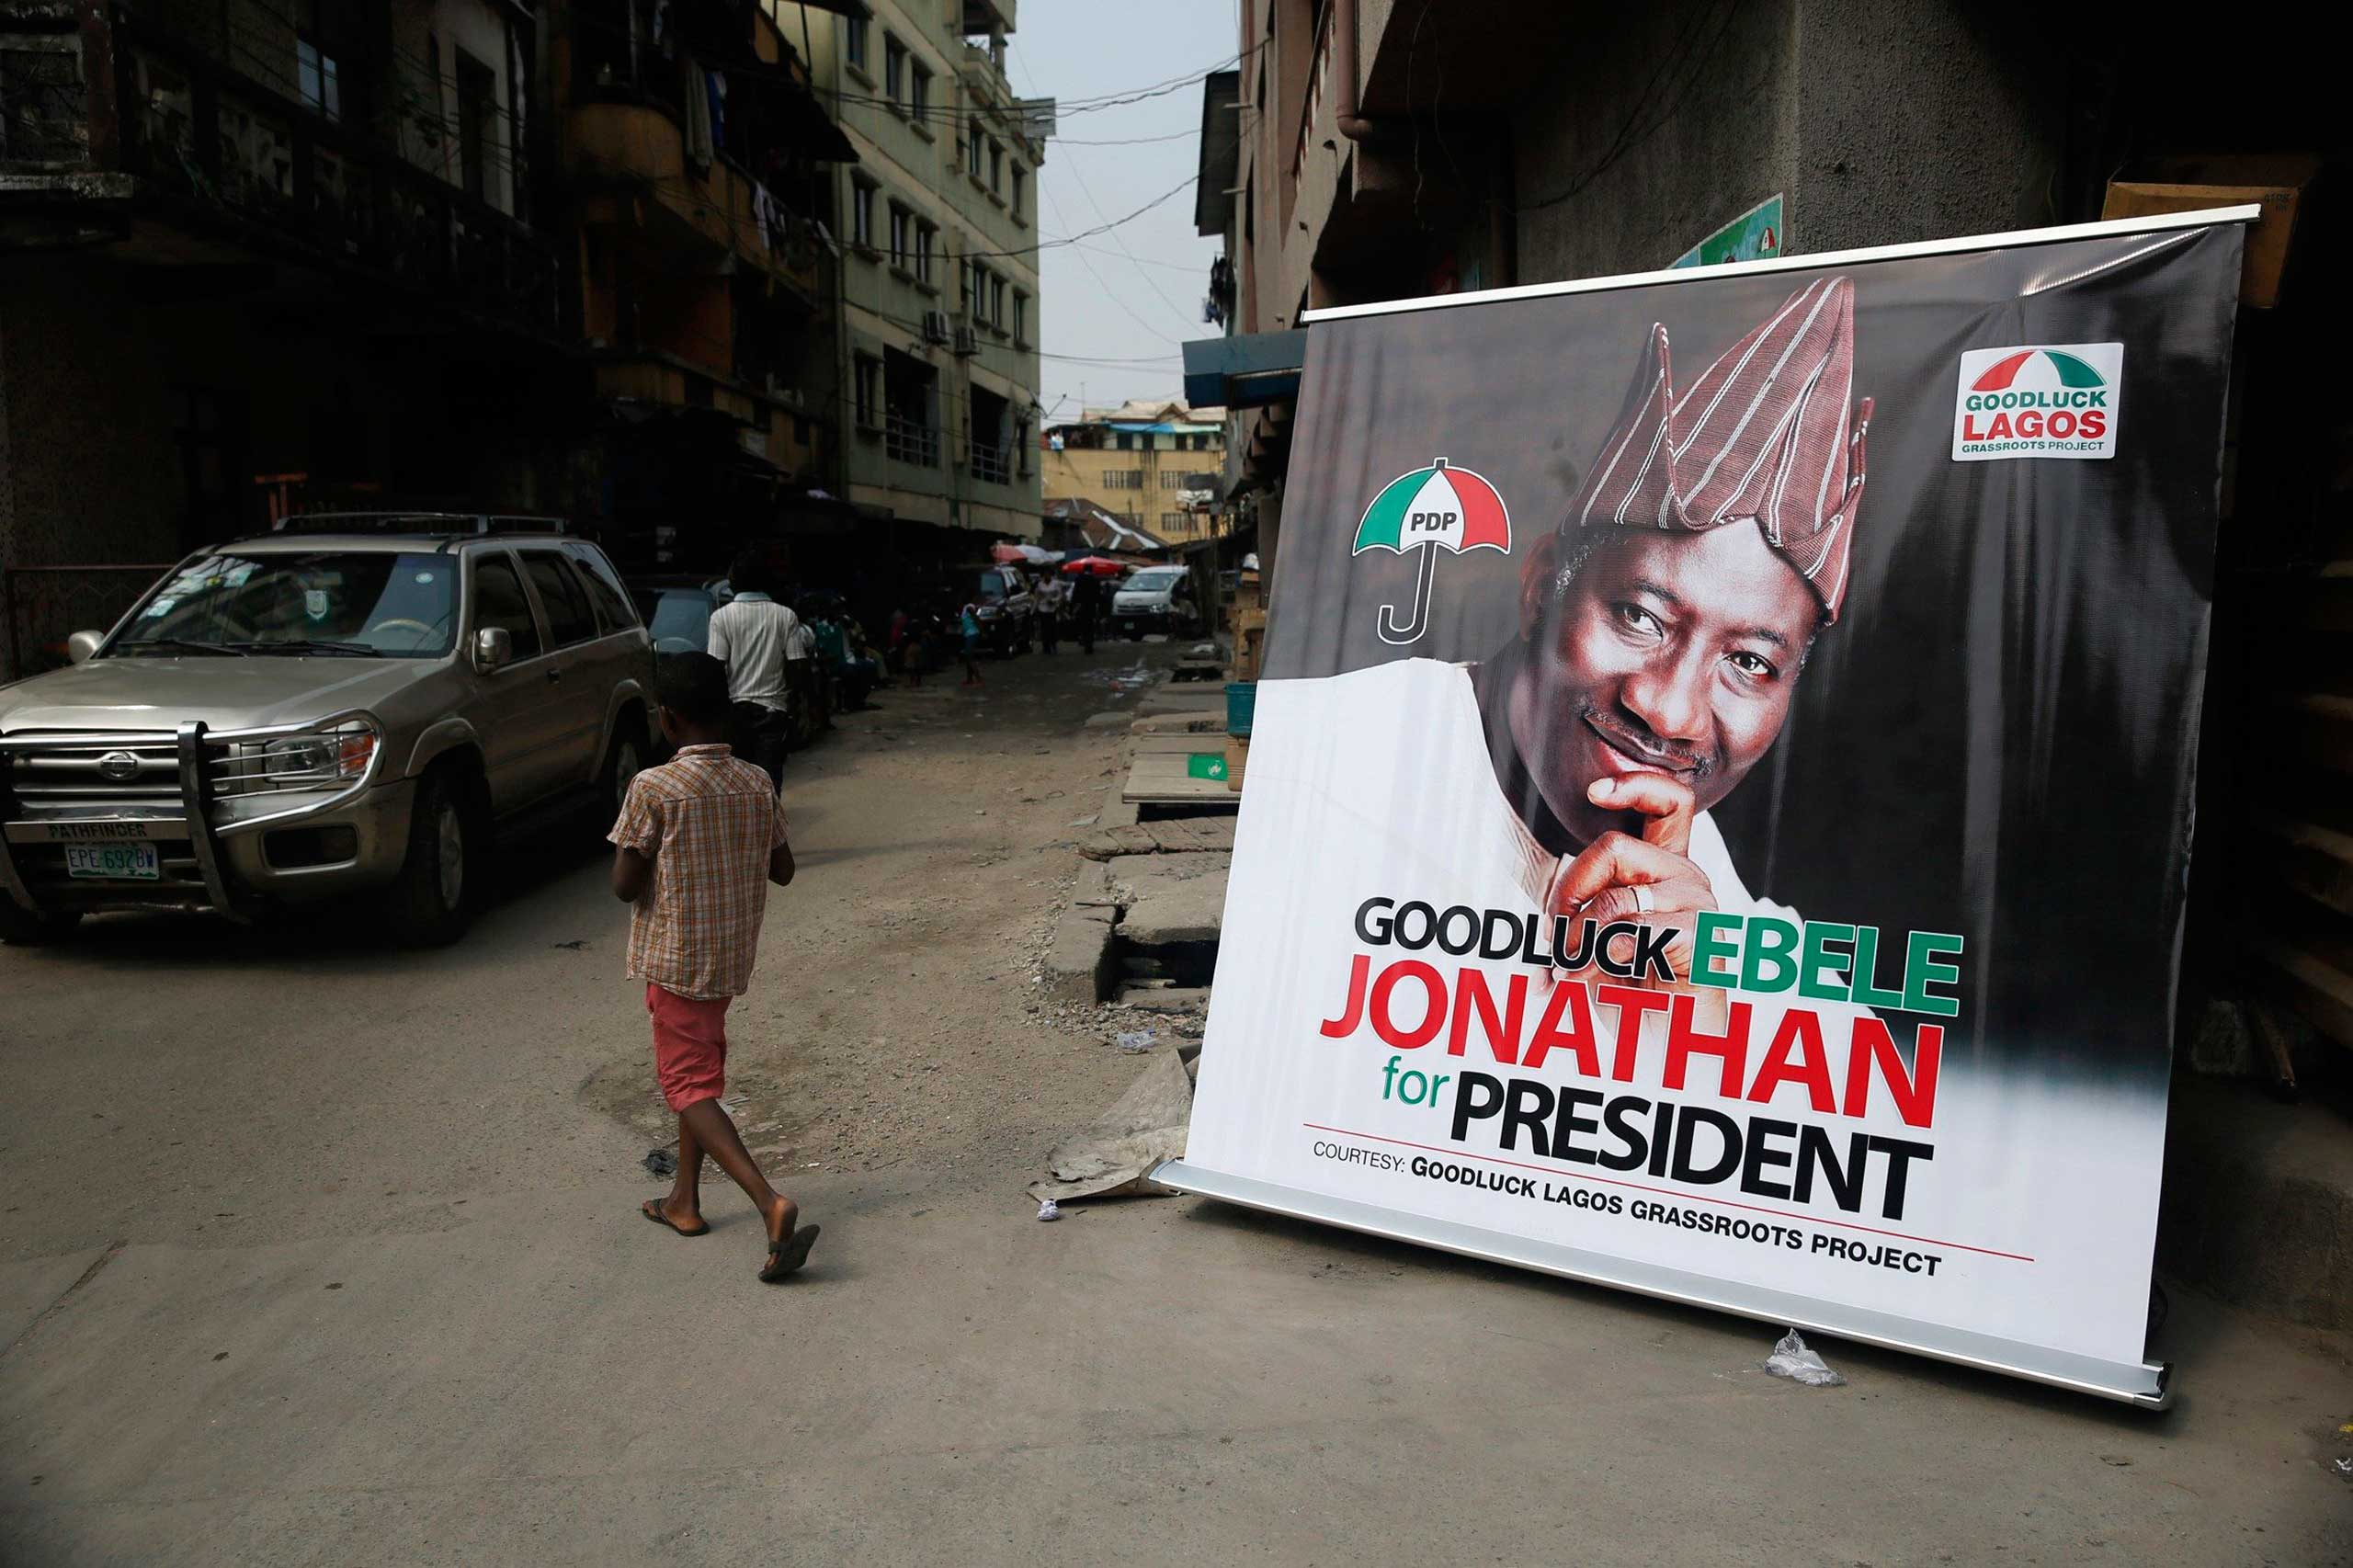 A boy walks near a banner campaigning for Nigeria's President Goodluck Jonathan along a street at Campus Square neighborhood in Lagos, Feb. 2, 2015.